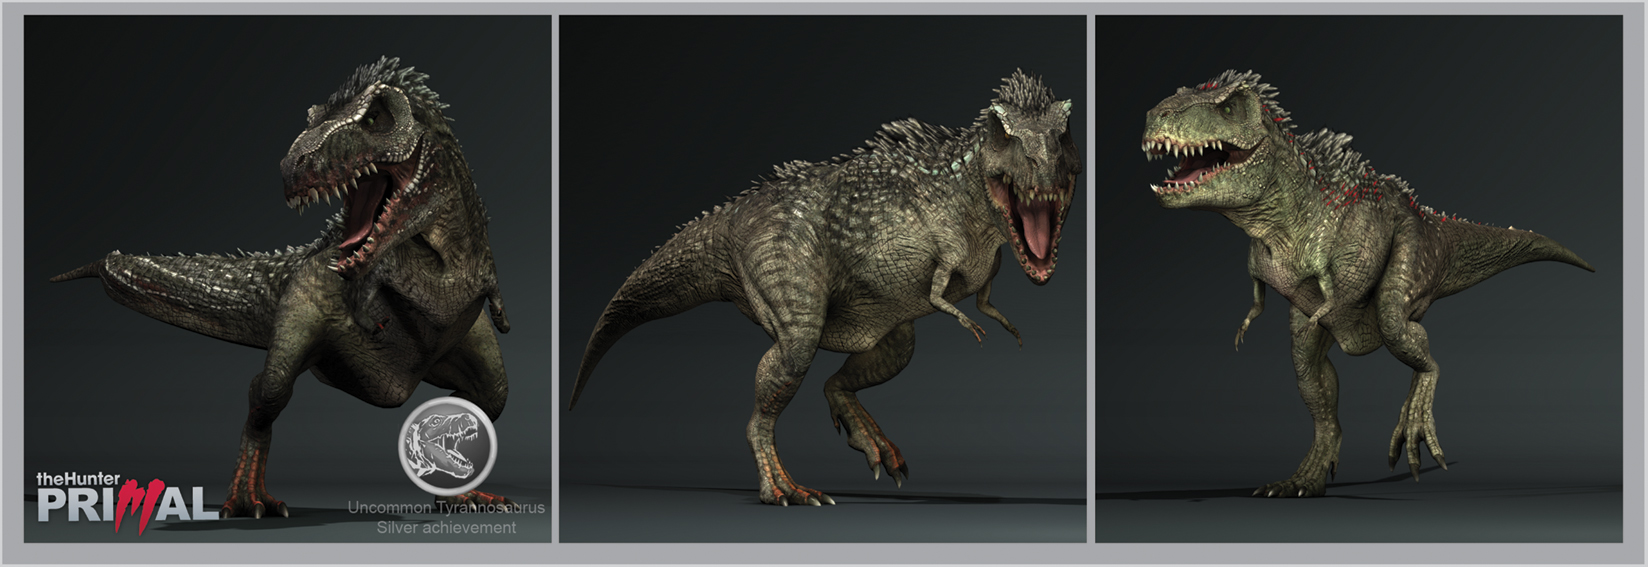 tyrannosaurus rex was a slow runner essay Anyone who can run 100 metres in 133 seconds would have been able to outrun a tyrannosaurus rex, according to new research contrary to suggestions that the six-tonne predator had a staggering.